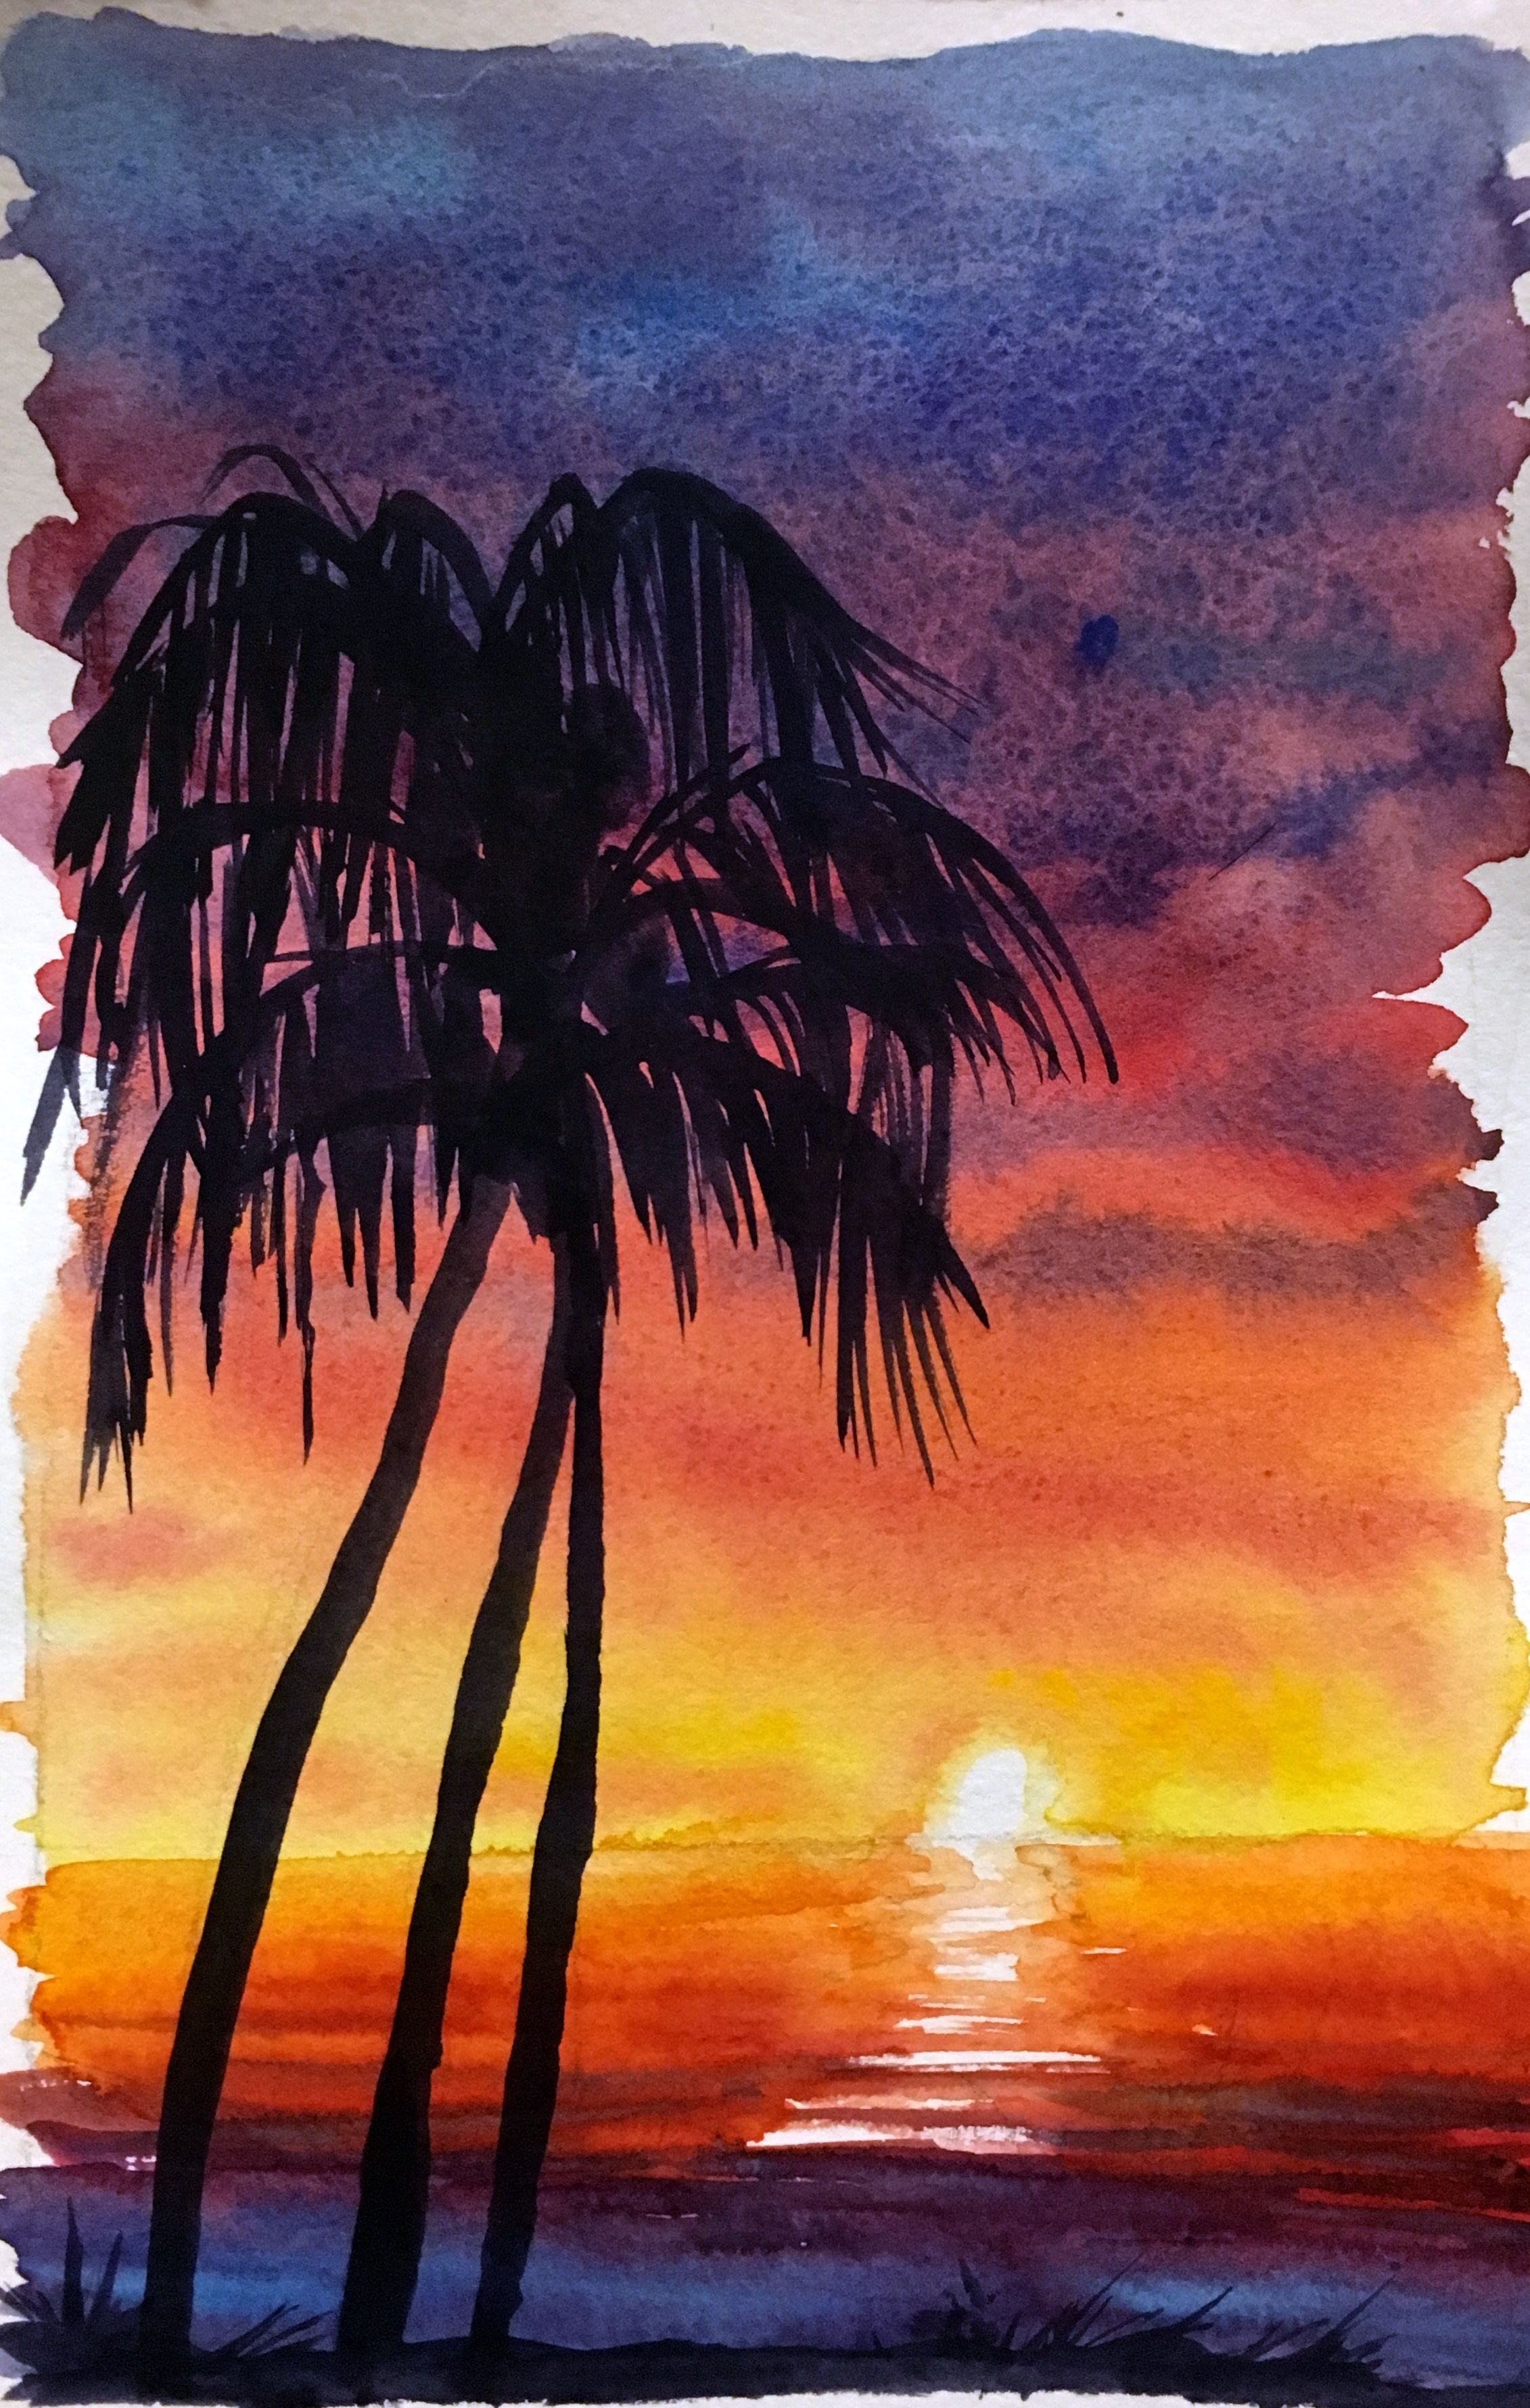 How To Watercolor Paint A Sunset Sky With Silhouettes Sunset